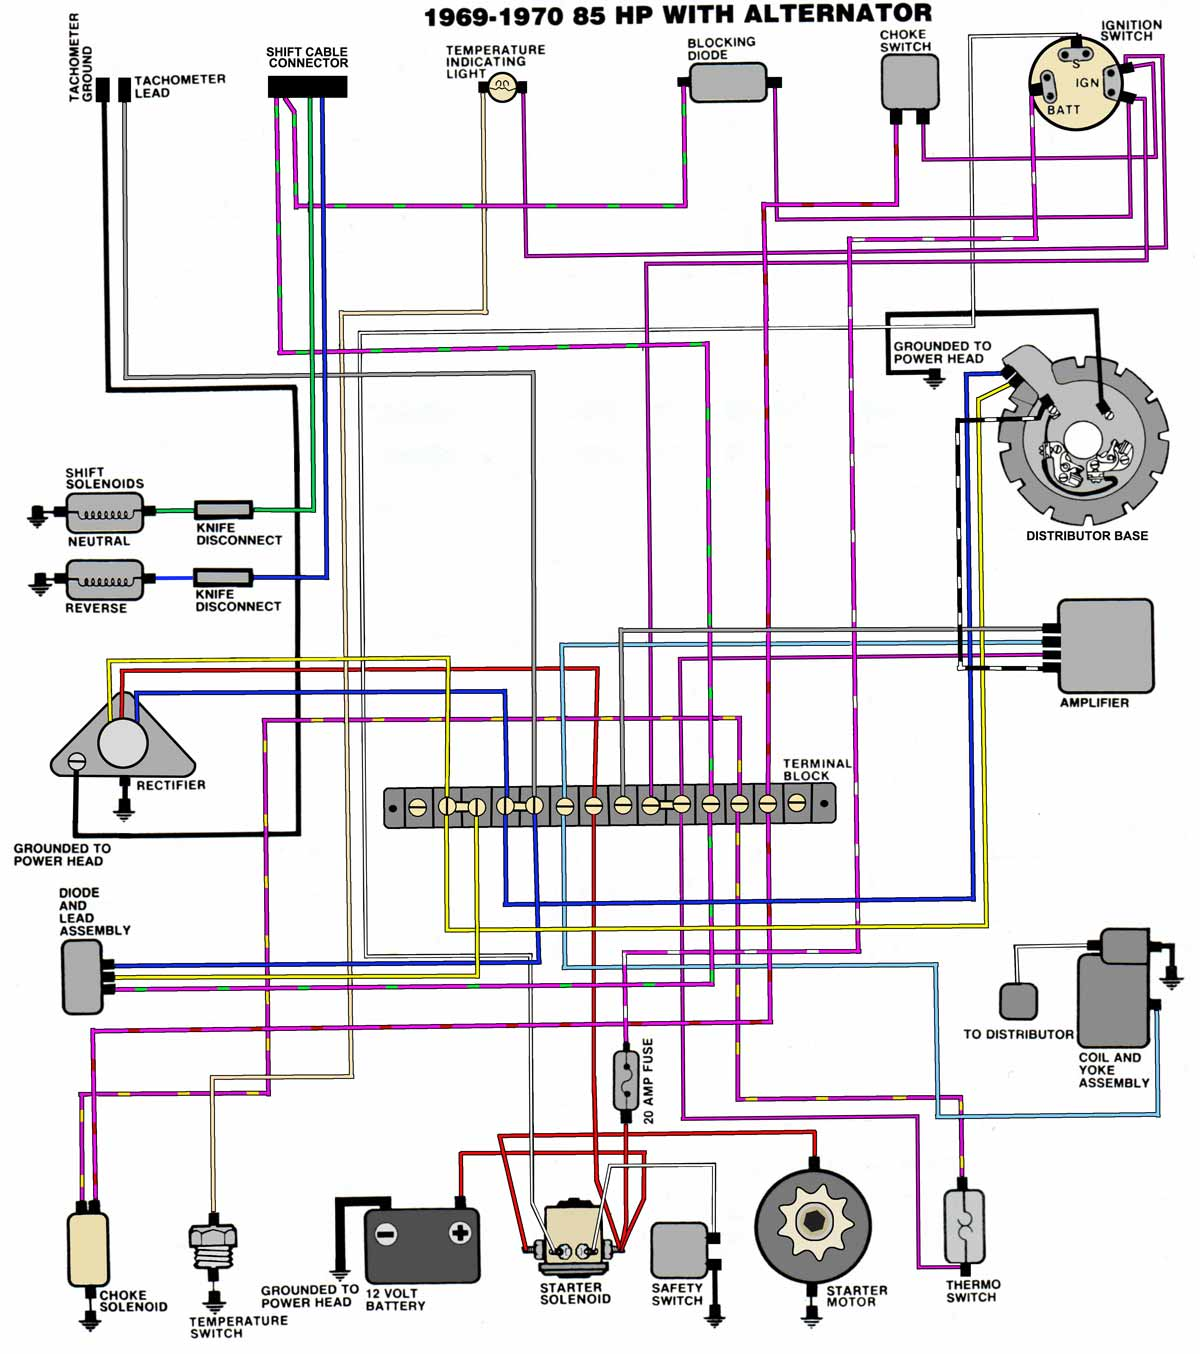 25 Hp Johnson Outboard Diagram Wireing Electrical Wiring Diagrams 100 HP  Johnson Outboard Motor Wiring Diagram 25 Hp Johnson Outboard Motor Wiring  Diagram